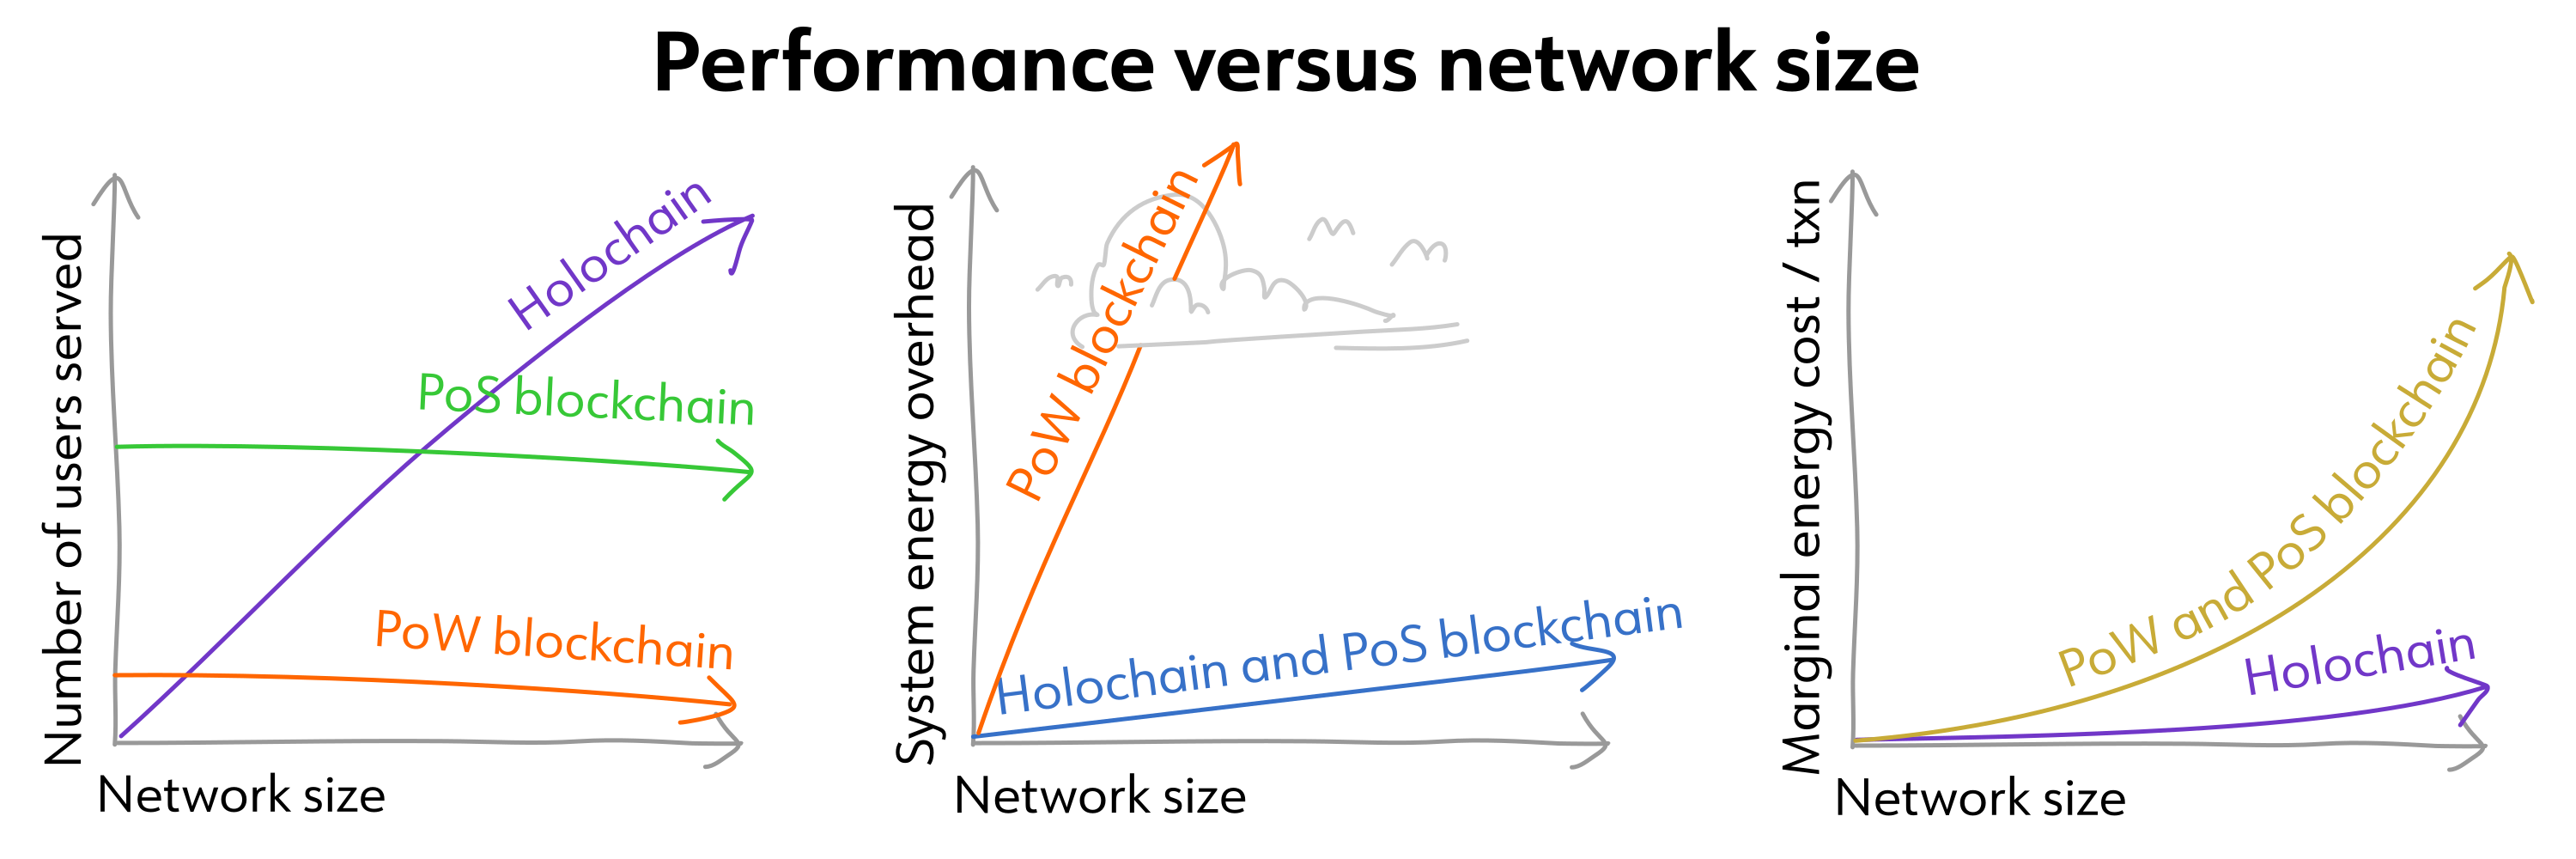 Three graphs showing how PoW, PoS, and Holochain handle three performance metrics as the network grows: number of users served, system energy overhead, and marginal energy cost per transaction. For interpretation of these graphs, read on!